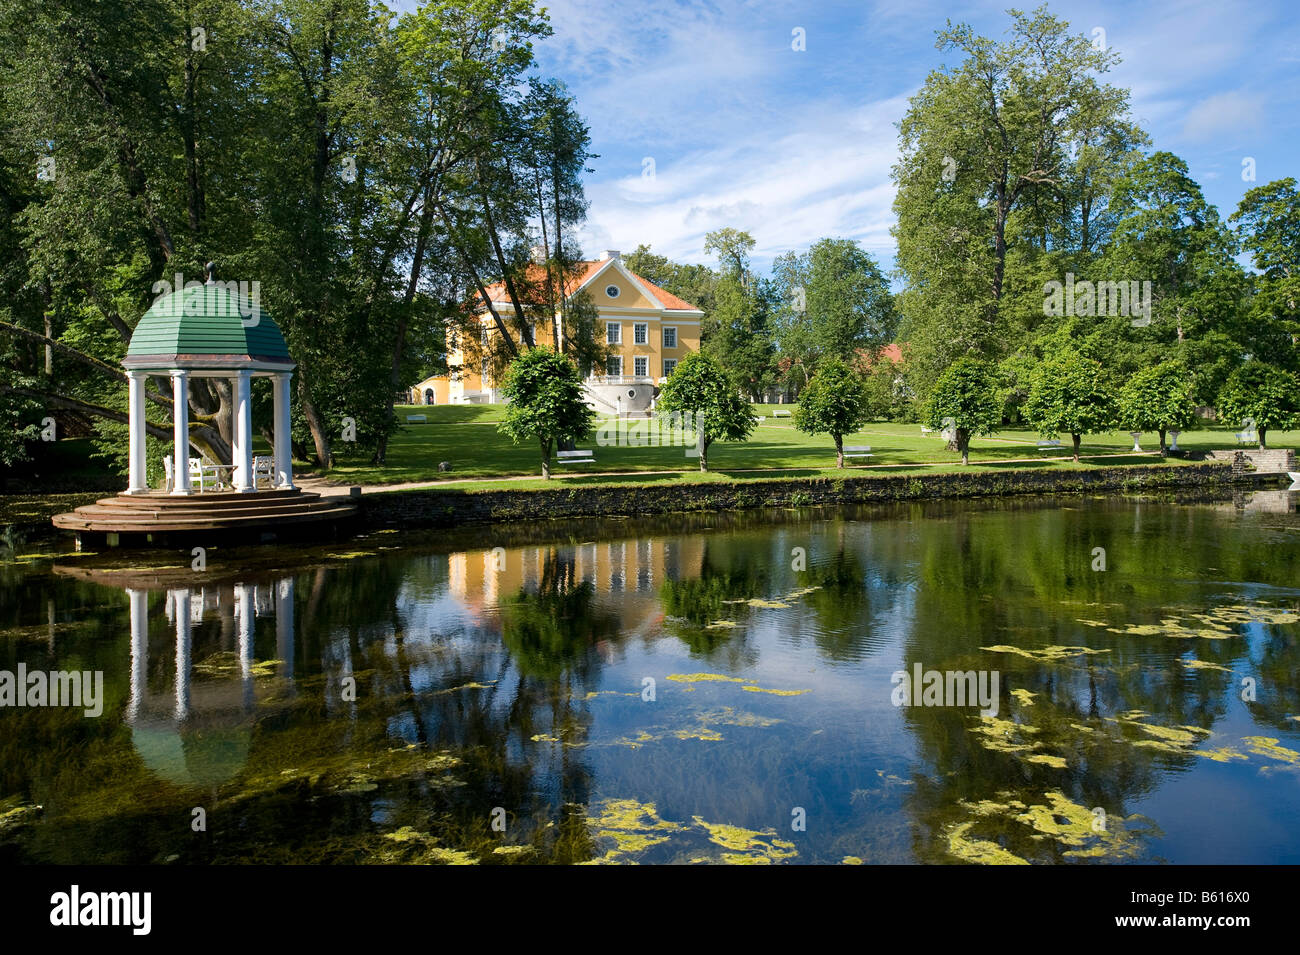 Pavillion Rotunda, Palmse Manor, Lahemaa, Estonia, Baltic States, Northeast Europe - Stock Image